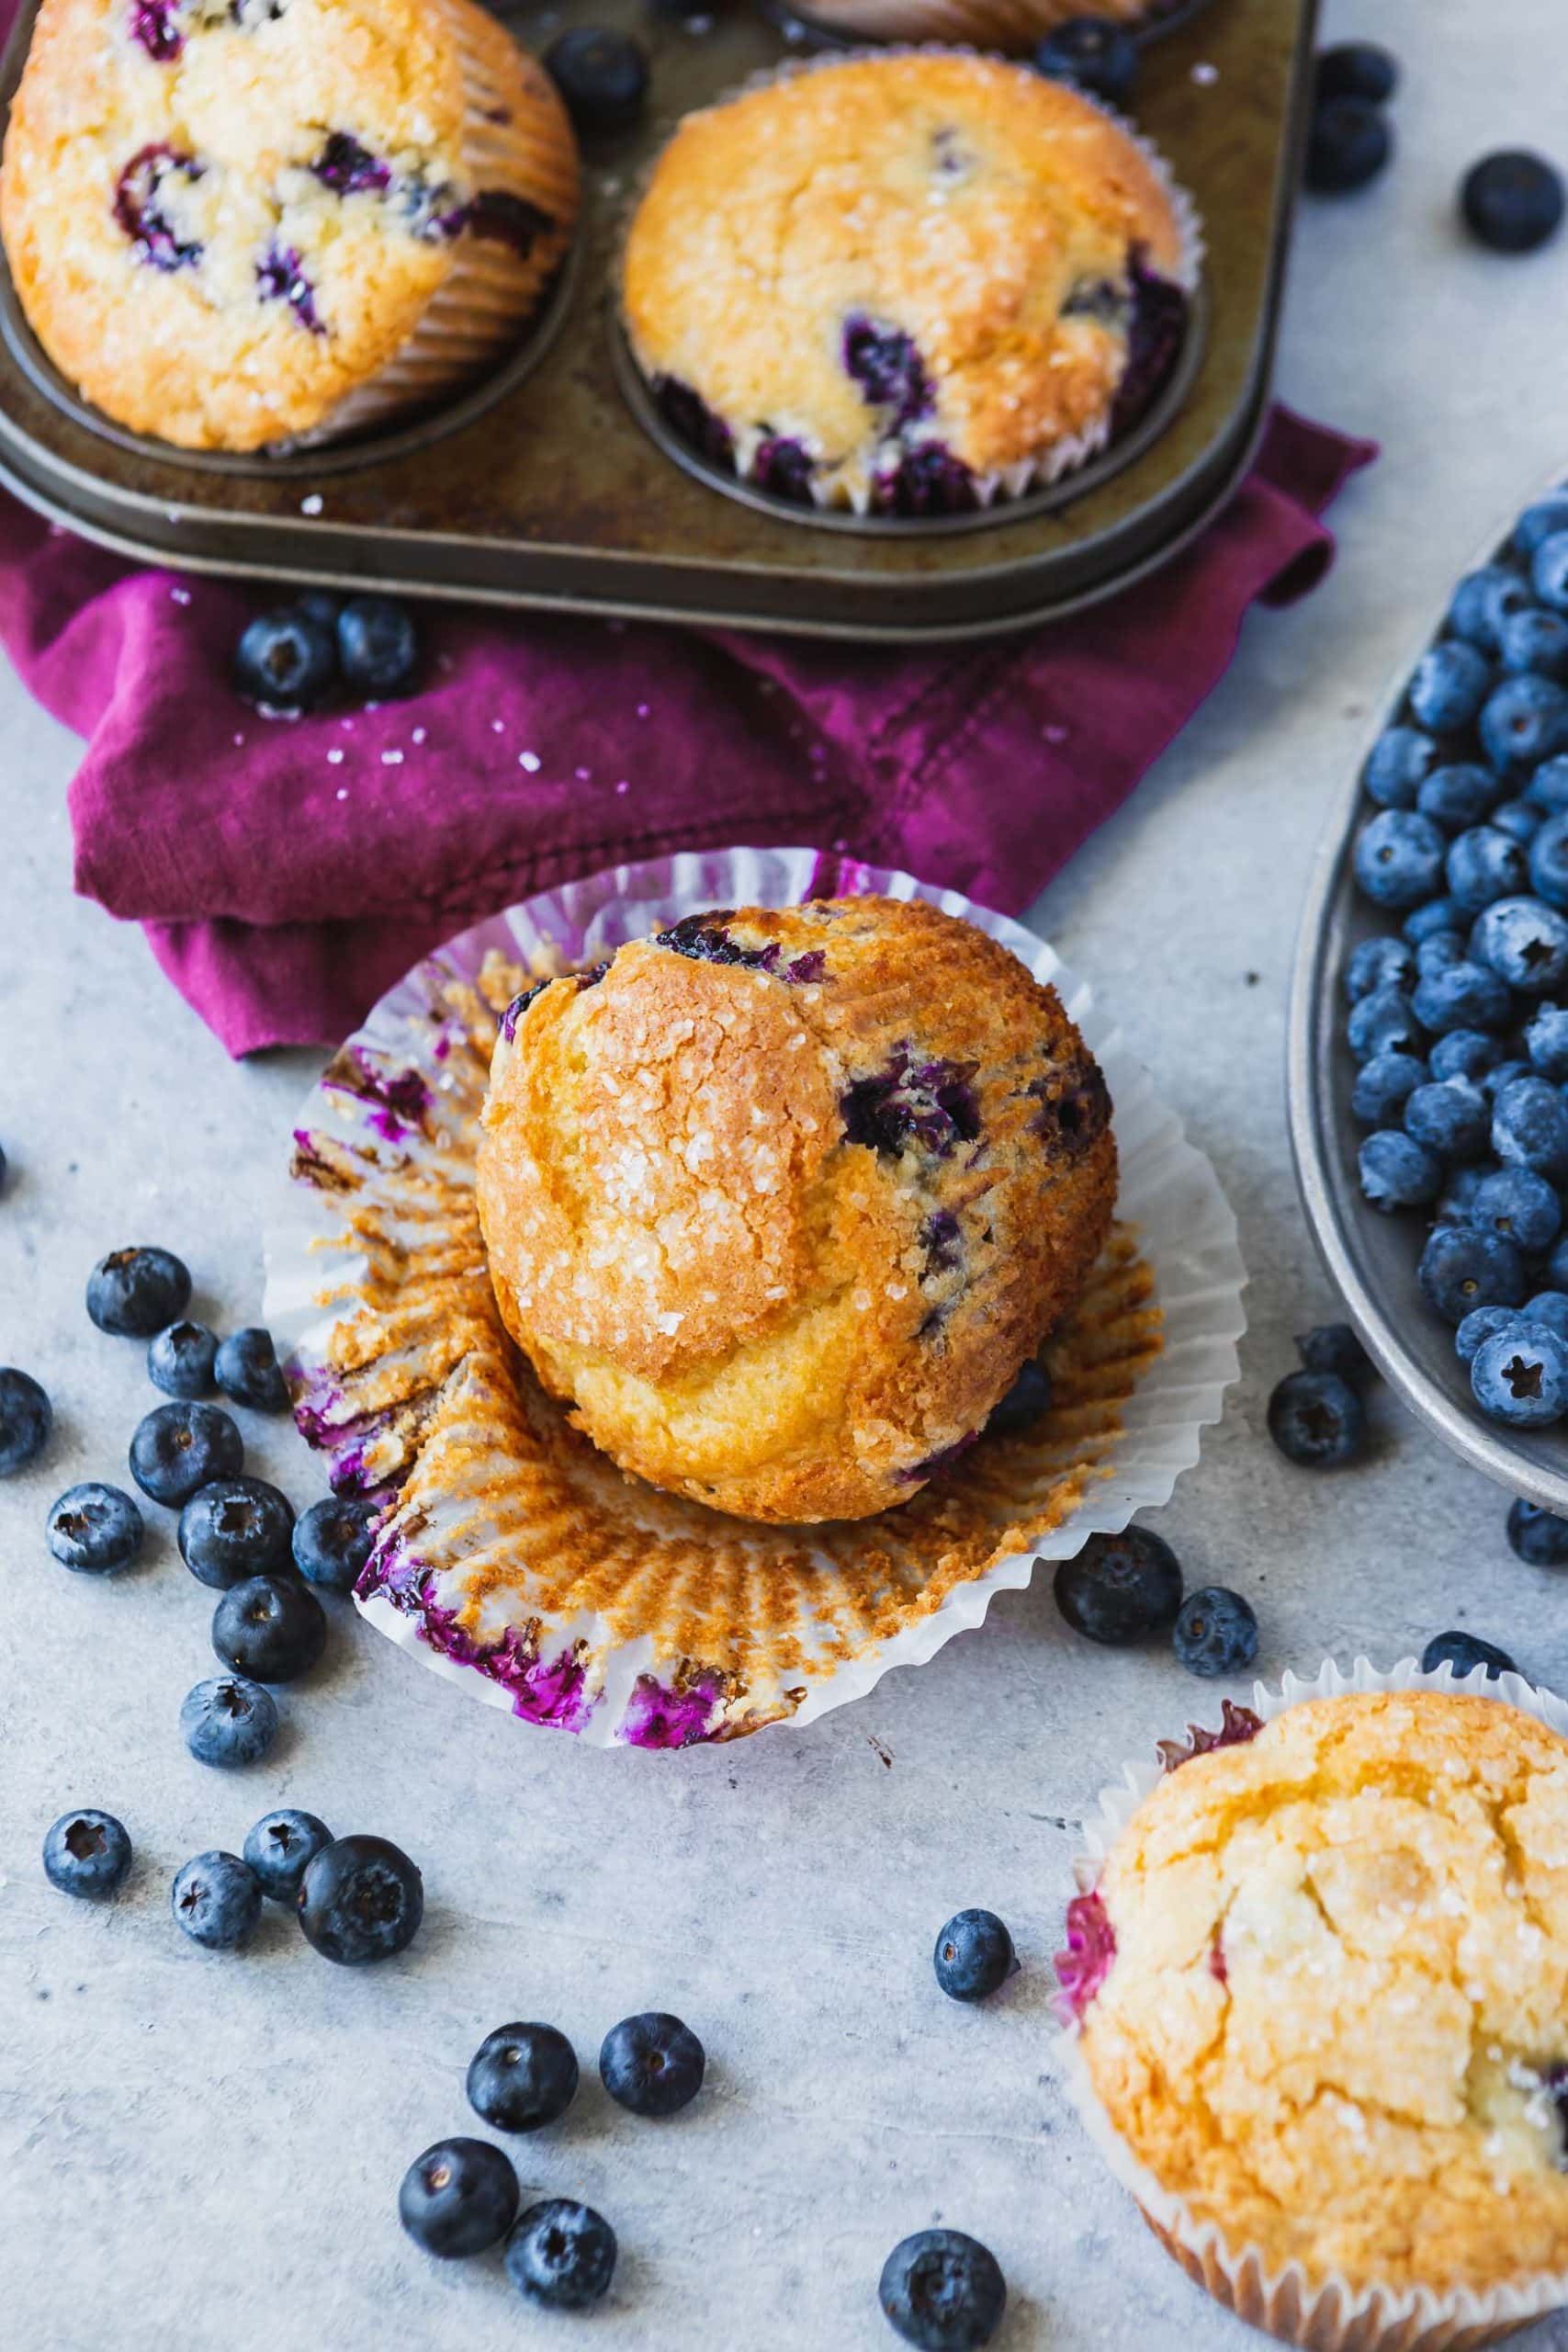 A blueberry muffin with parchment peeled down, there's blueberries appearing in muffins and blueberries on the table next to muffins, and there's a muffin tin with other muffins in the background.